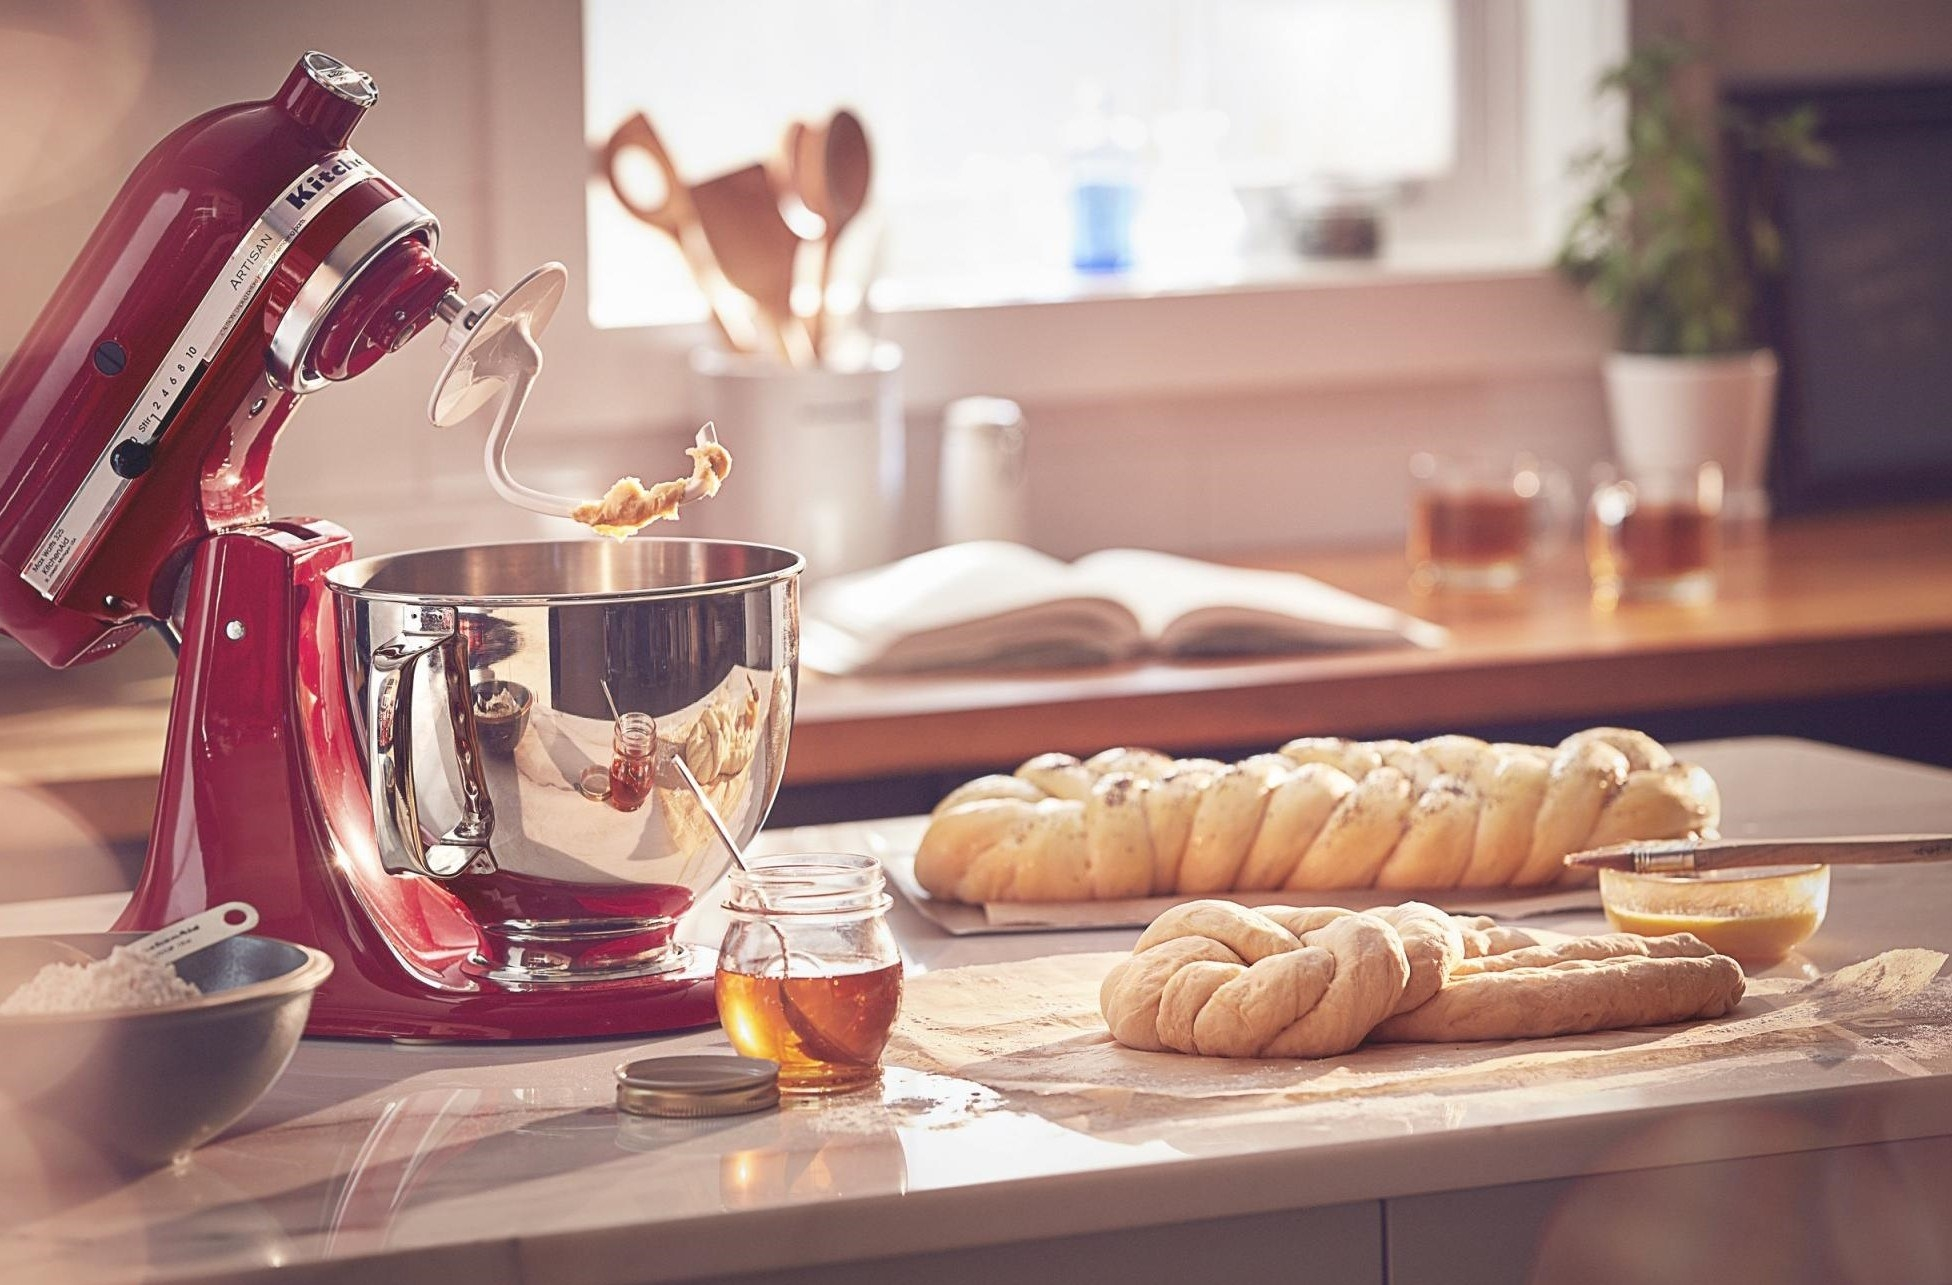 The mixer, shown in a kitchen scene with plaited bread dough